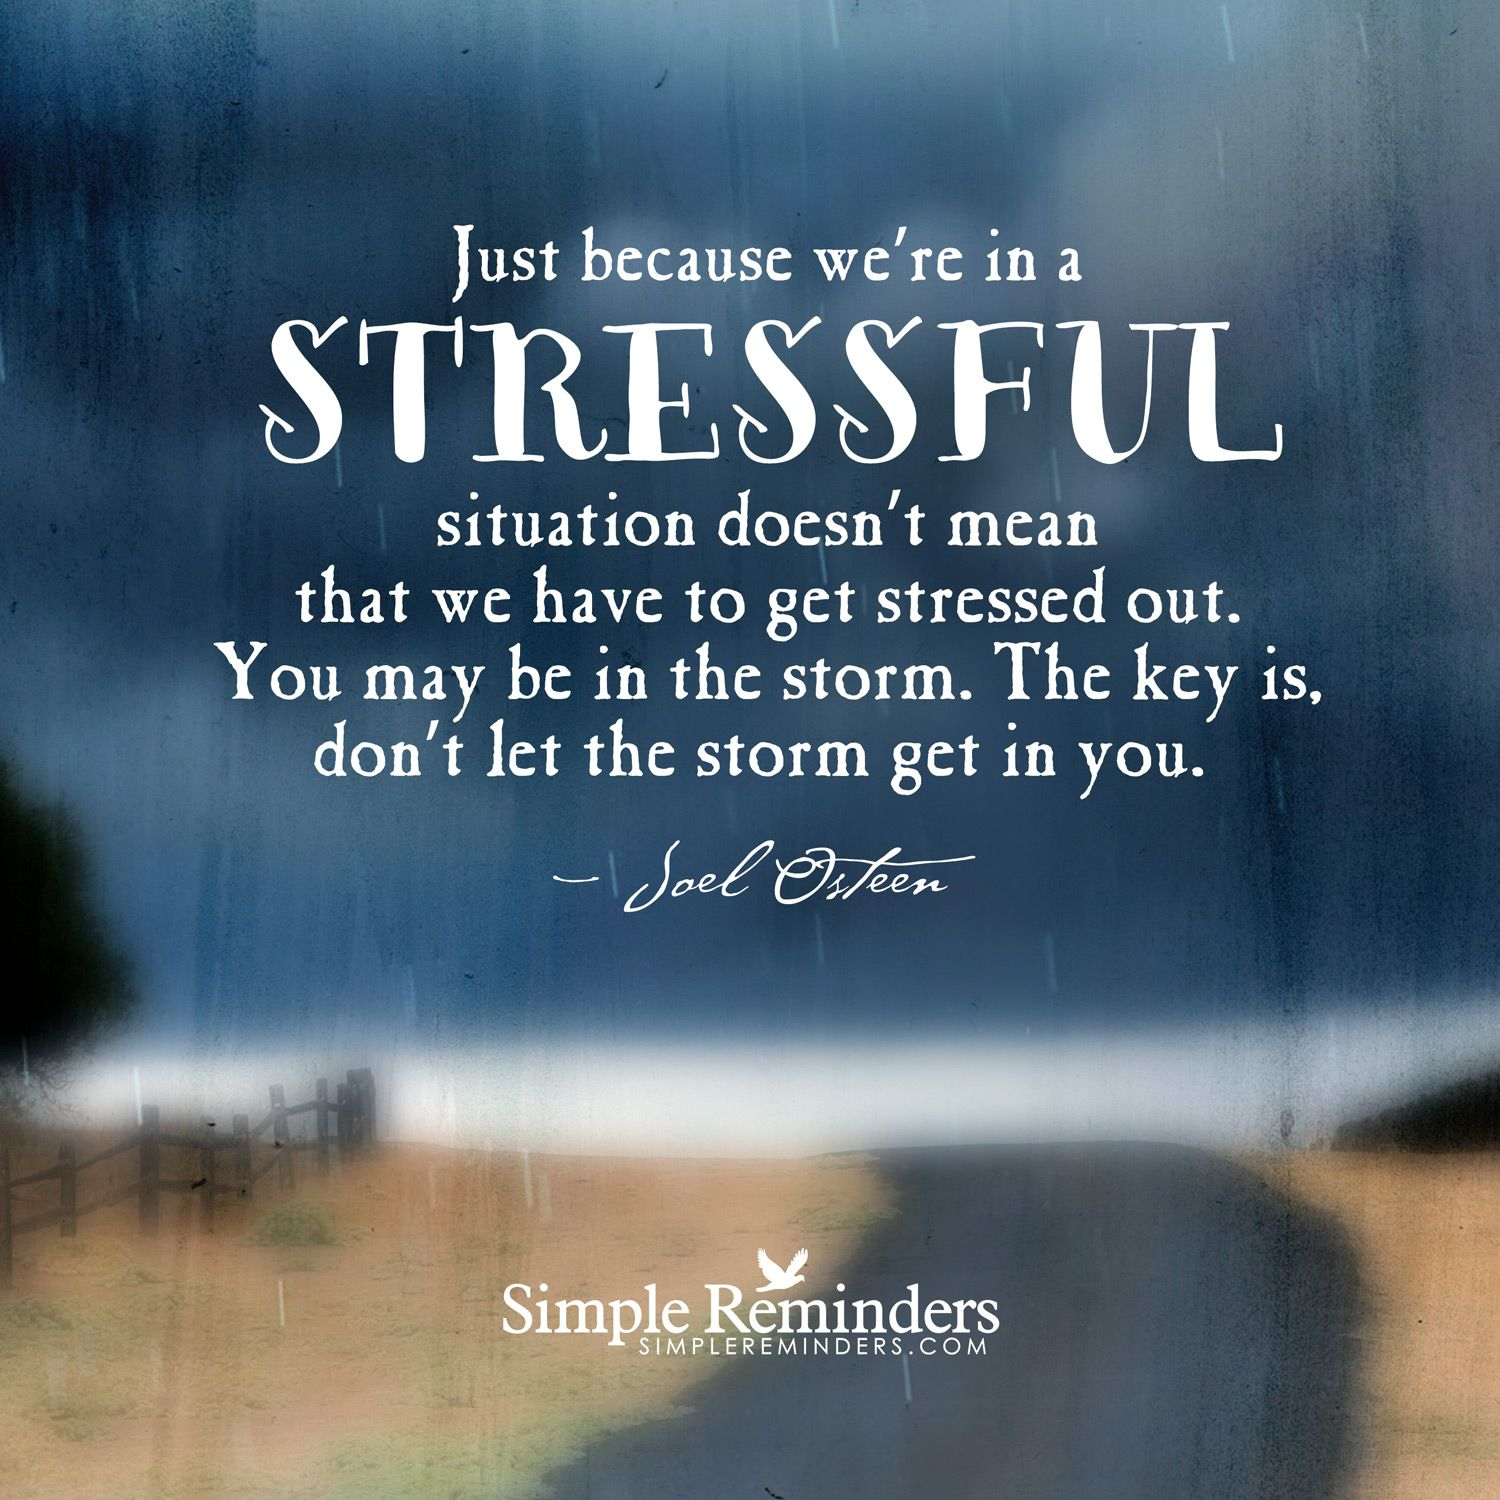 Stressful Life Quotes Just Because We're In A Stressful Situation Doesn't Mean That We